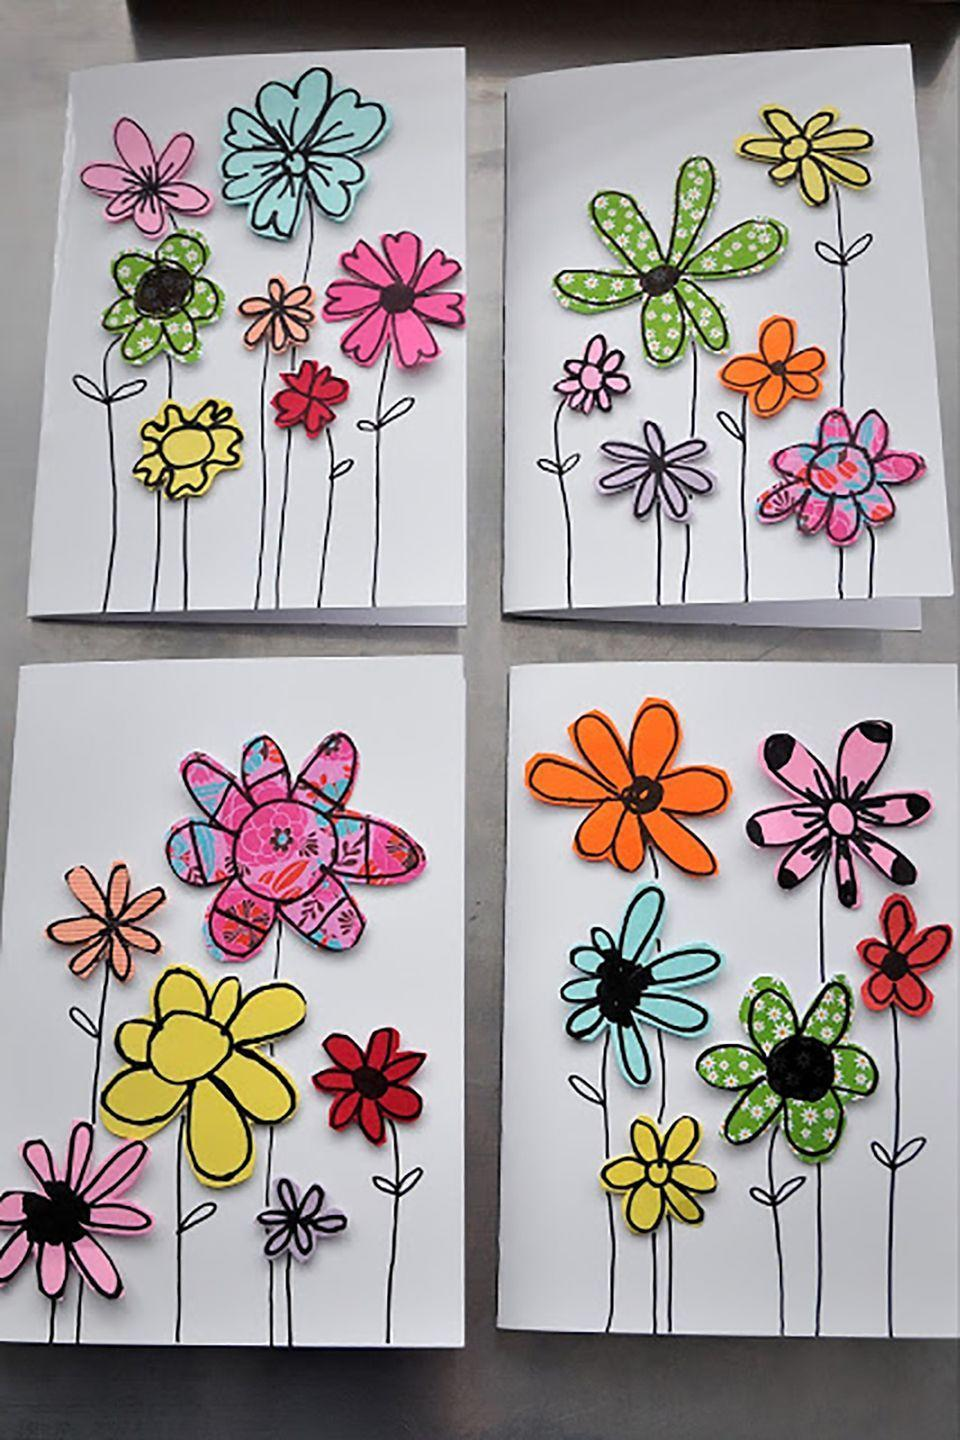 """<p>Use old pieces of scrapbook paper, wrapping paper, or card stock and have the kids draw flowers of all shapes and sizes. The cut-out shapes look absolutely darling on Mother's Day cards.</p><p><strong>Get the tutorial at <a href=""""http://mamaisdreaming.blogspot.co.uk/2015/07/kids-craft-paper-scraps-greeting-cards.html"""" rel=""""nofollow noopener"""" target=""""_blank"""" data-ylk=""""slk:Mama Is Dreaming"""" class=""""link rapid-noclick-resp"""">Mama Is Dreaming</a>. </strong></p>"""